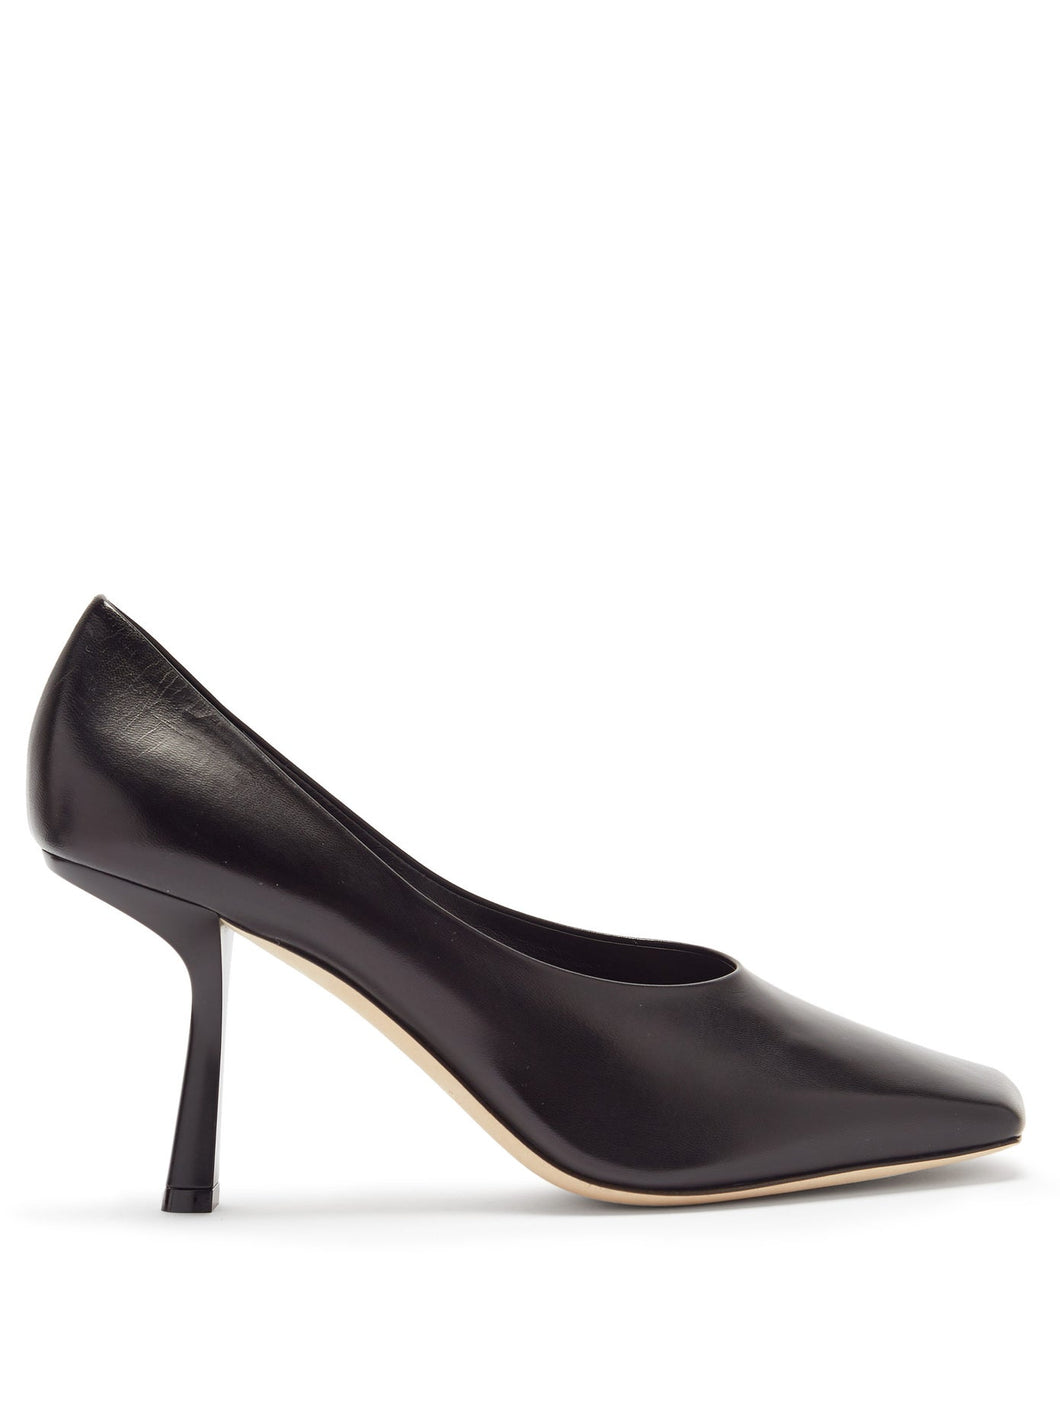 Marcela 85 square-toe leather pumps